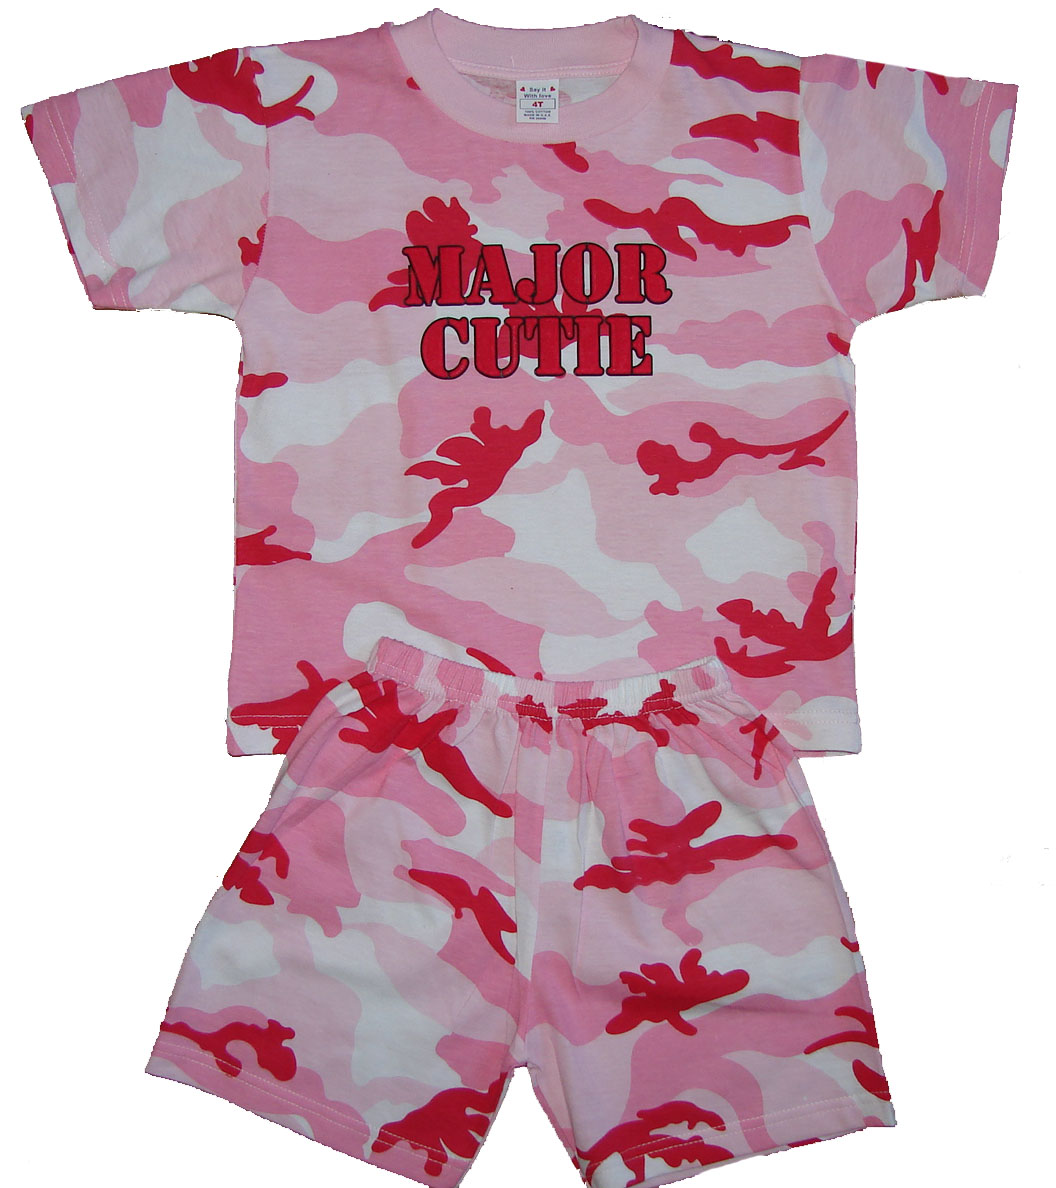 Major Cutie Pink Camo 2pc Set